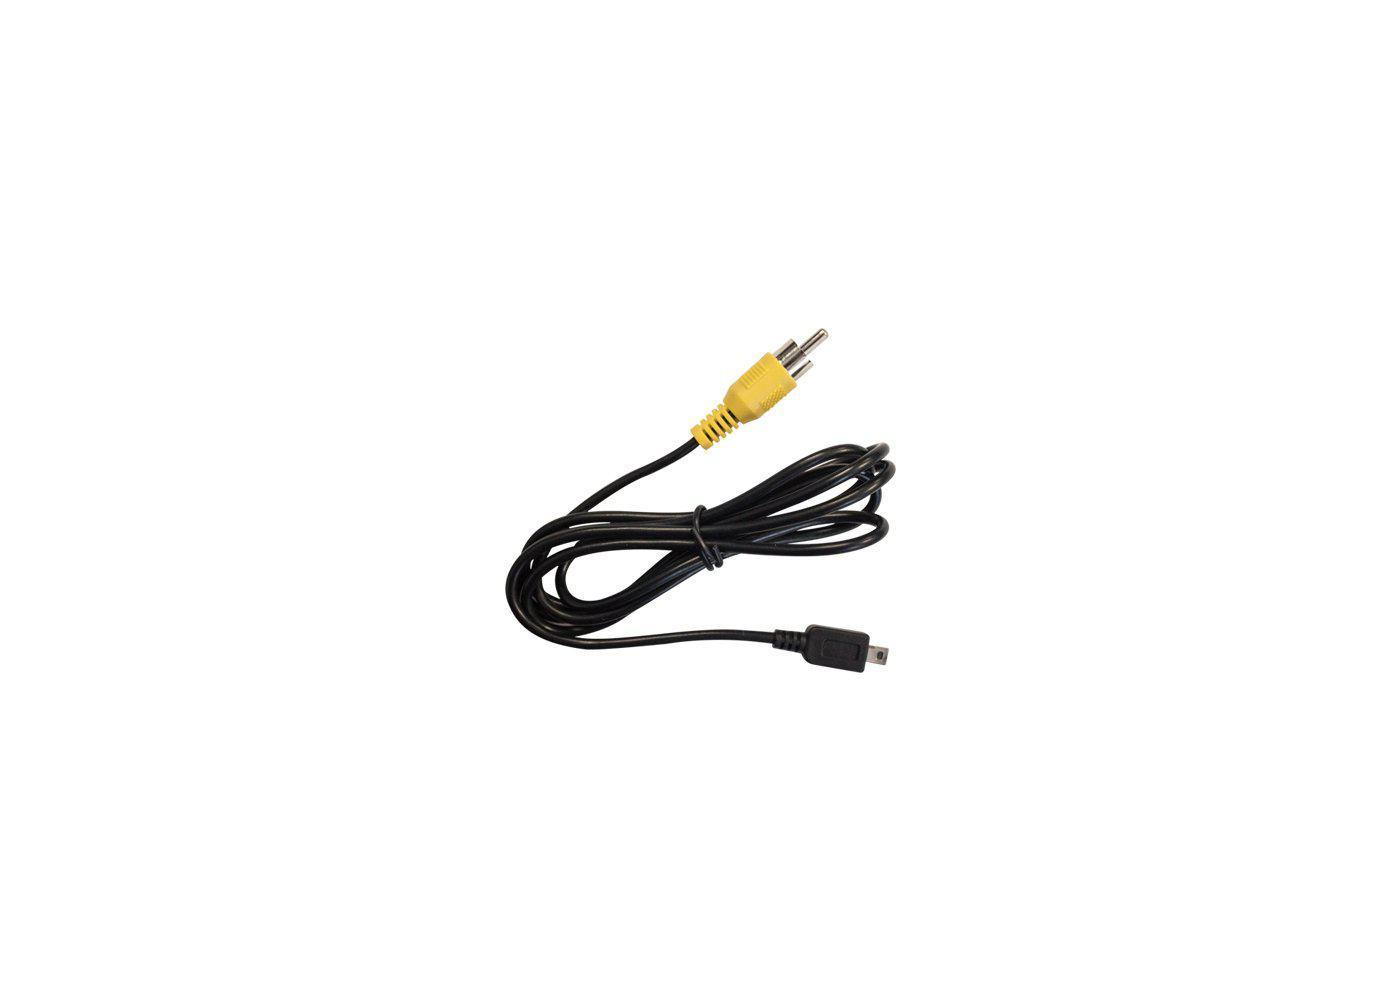 WASPcam 4K Video Cable - cobra.com